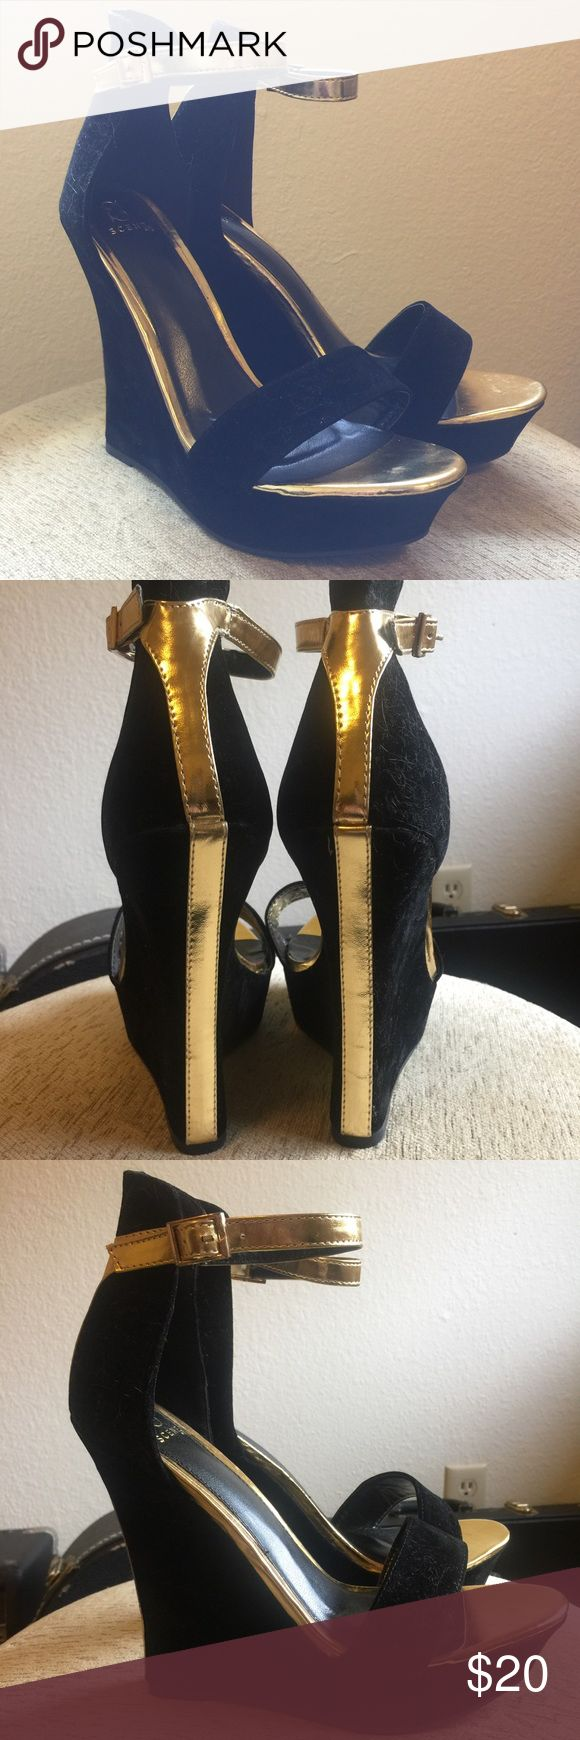 Black and Gold Wedge Heels Beautiful black and gold wedge heels! Super soft velvet material on the outside. These shoes make a perfect accent to an outfit. 👠  NWOT NEW WITHOUT TAGS!! These have never been worn.   Color: Black and Gold Size: 8.5  All items come from a clean, smoke free home.  ❌No Trades❌ Shoes Wedges